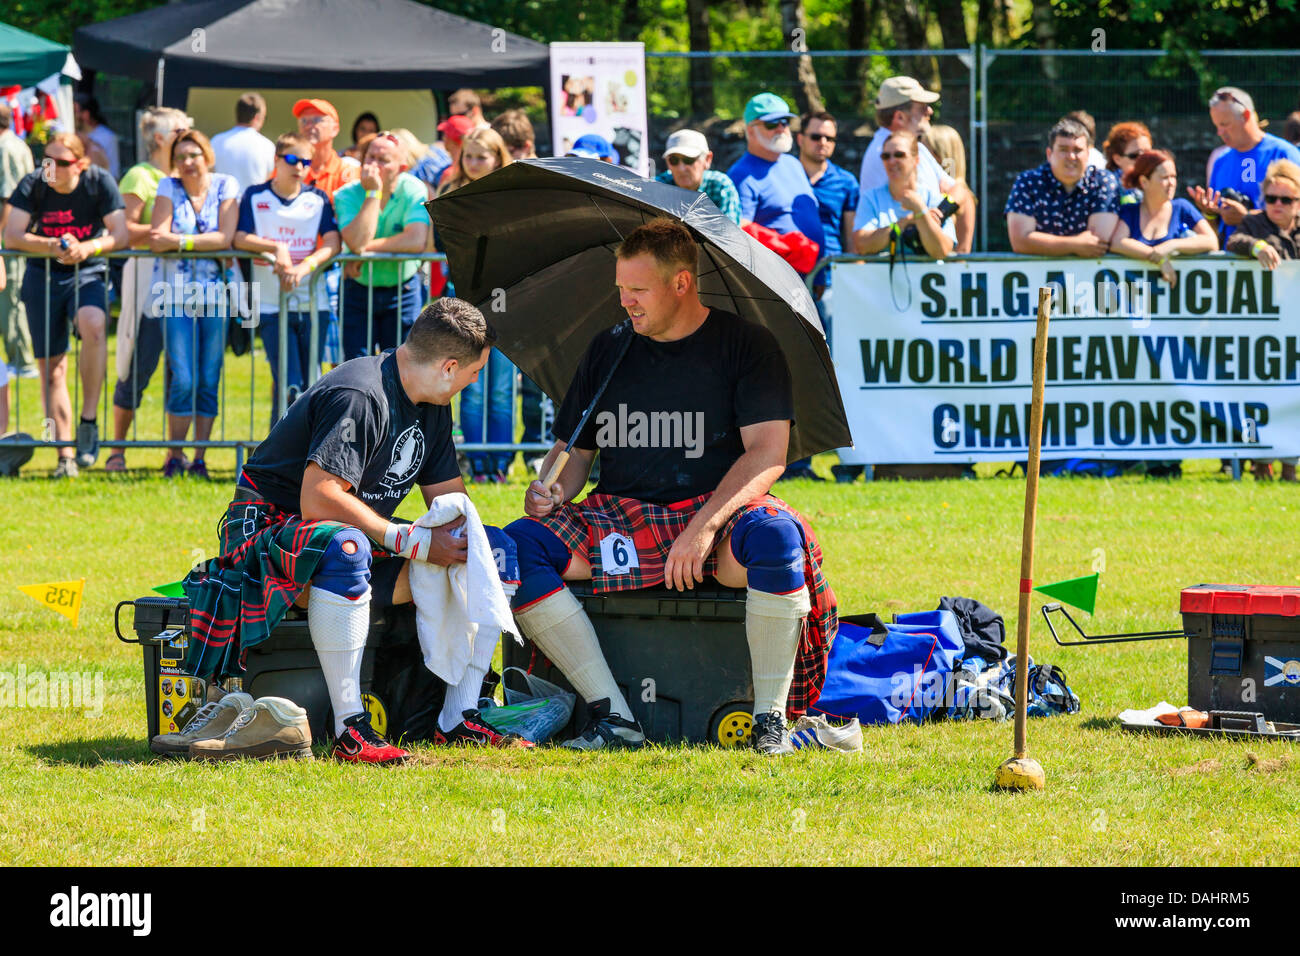 Two competitors in the Scottish Highland Games official World heavyweight Championship, Loch Lomond Highland Games, - Stock Image